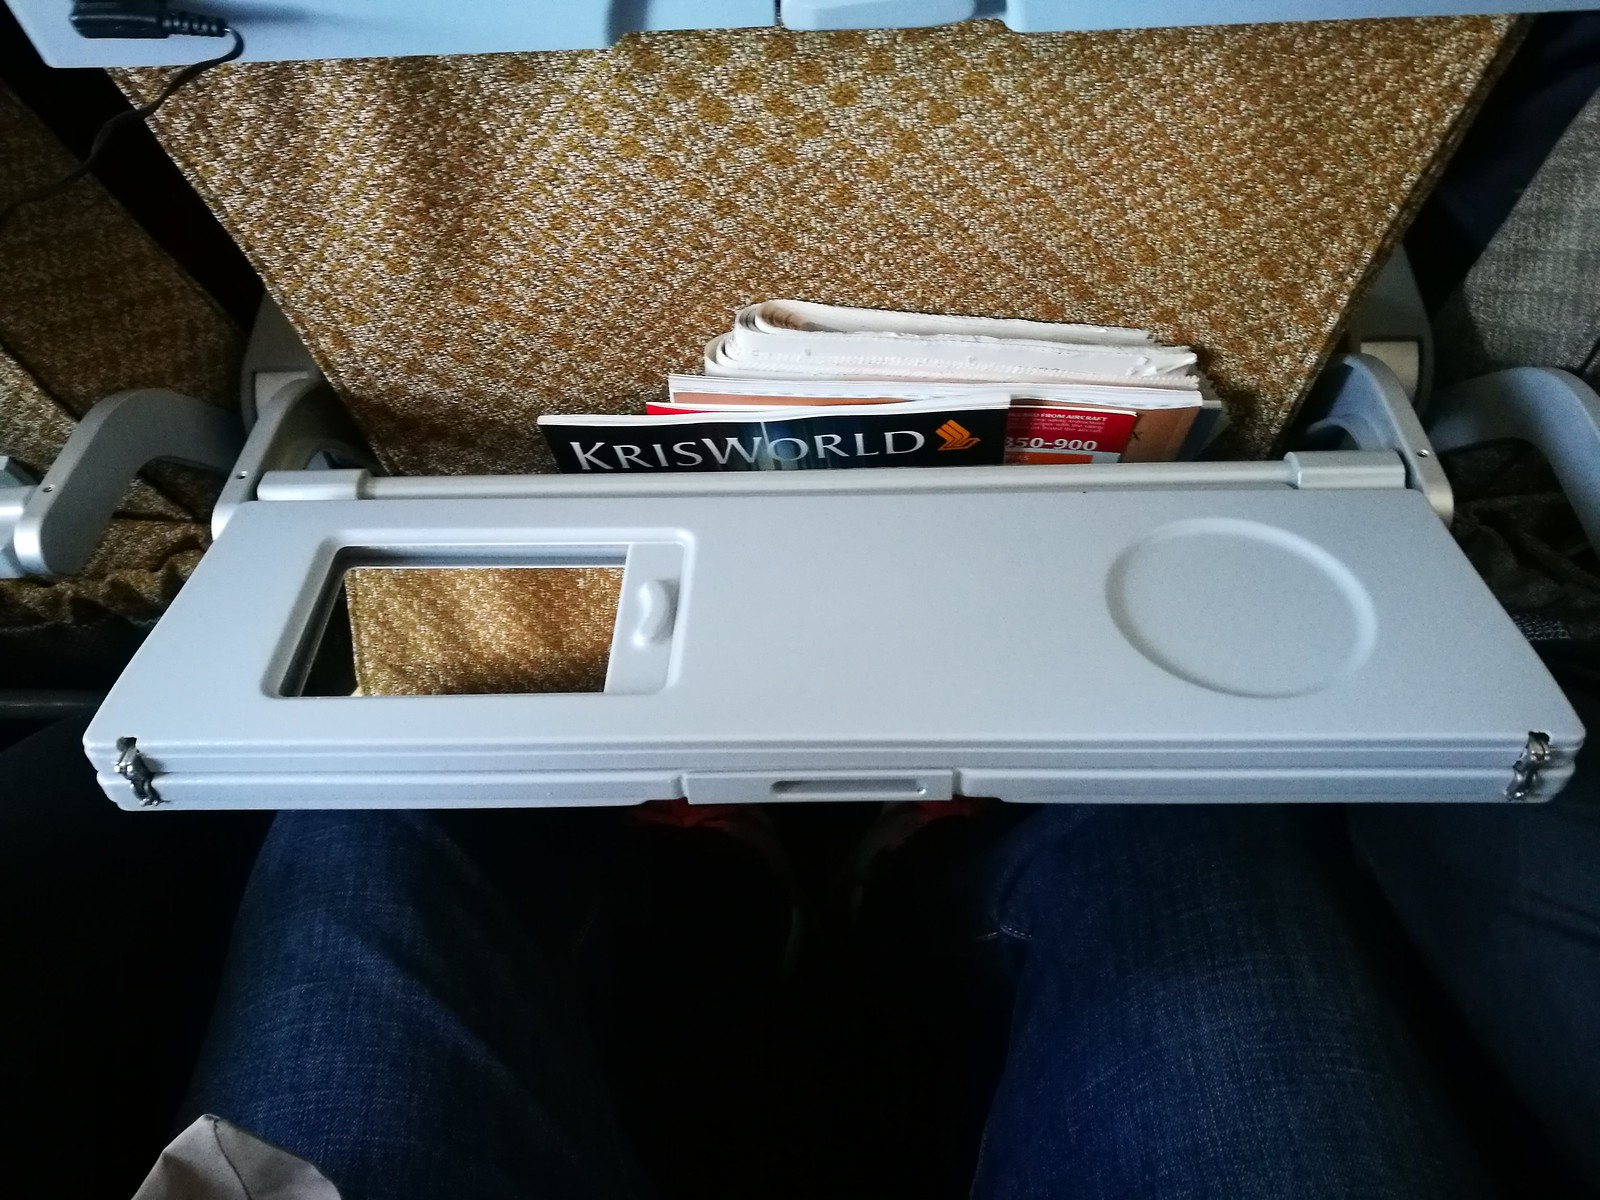 Tray table with mirror